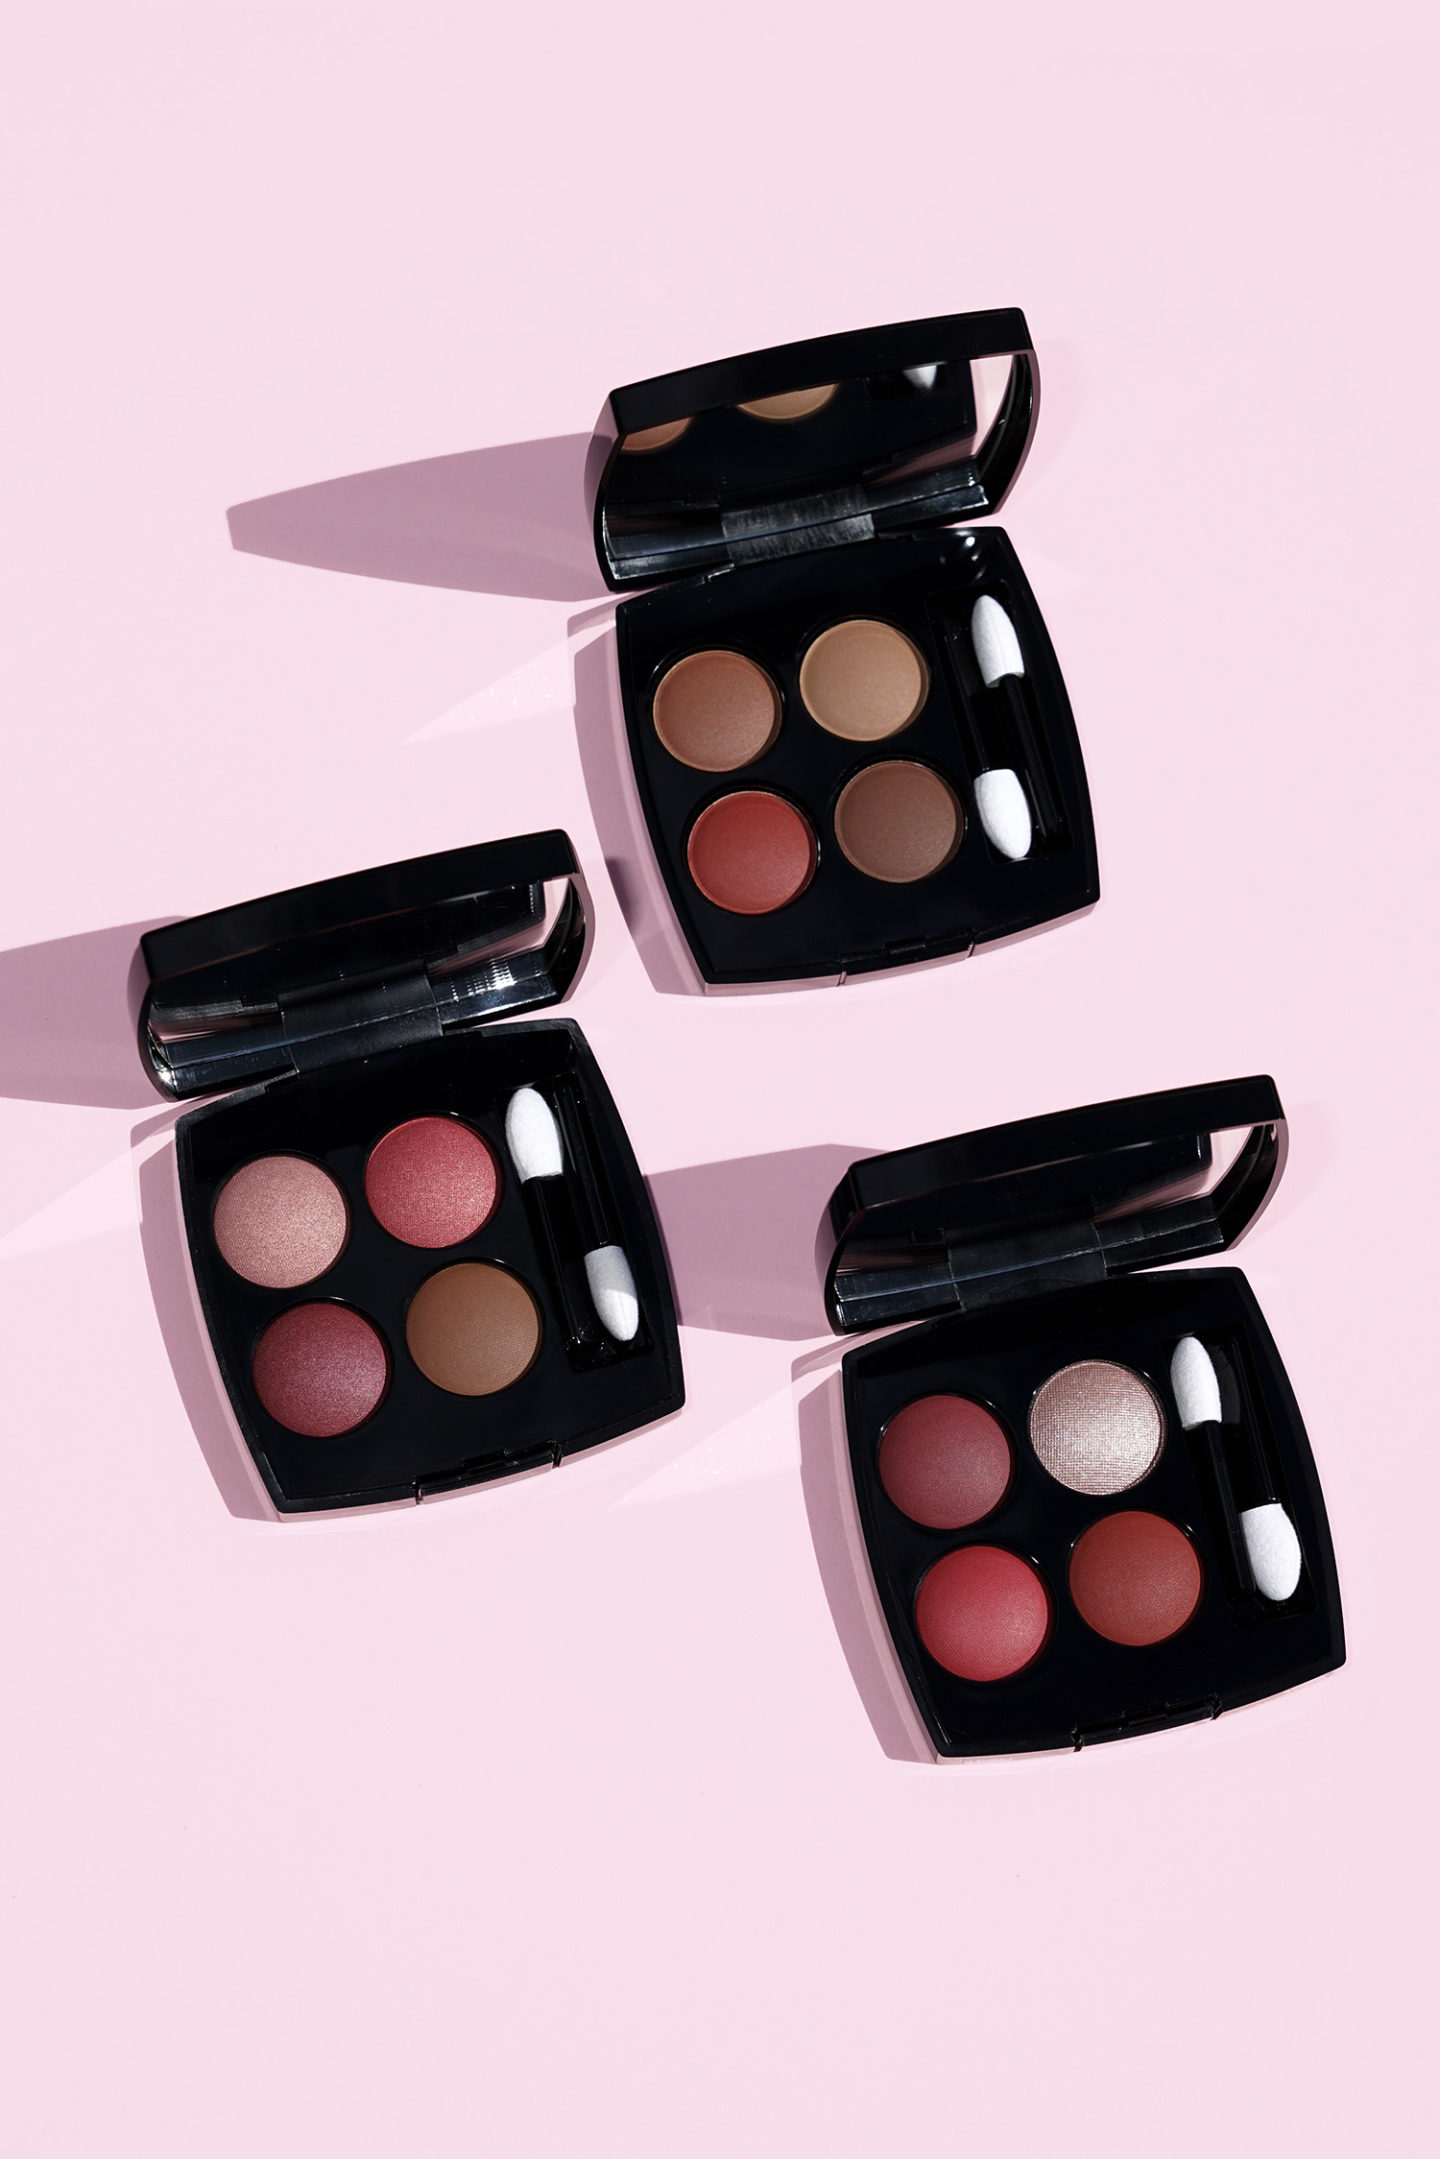 Chanel Automne-Hiver 2020 - Les 4 Ombres Eyeshadow Quads